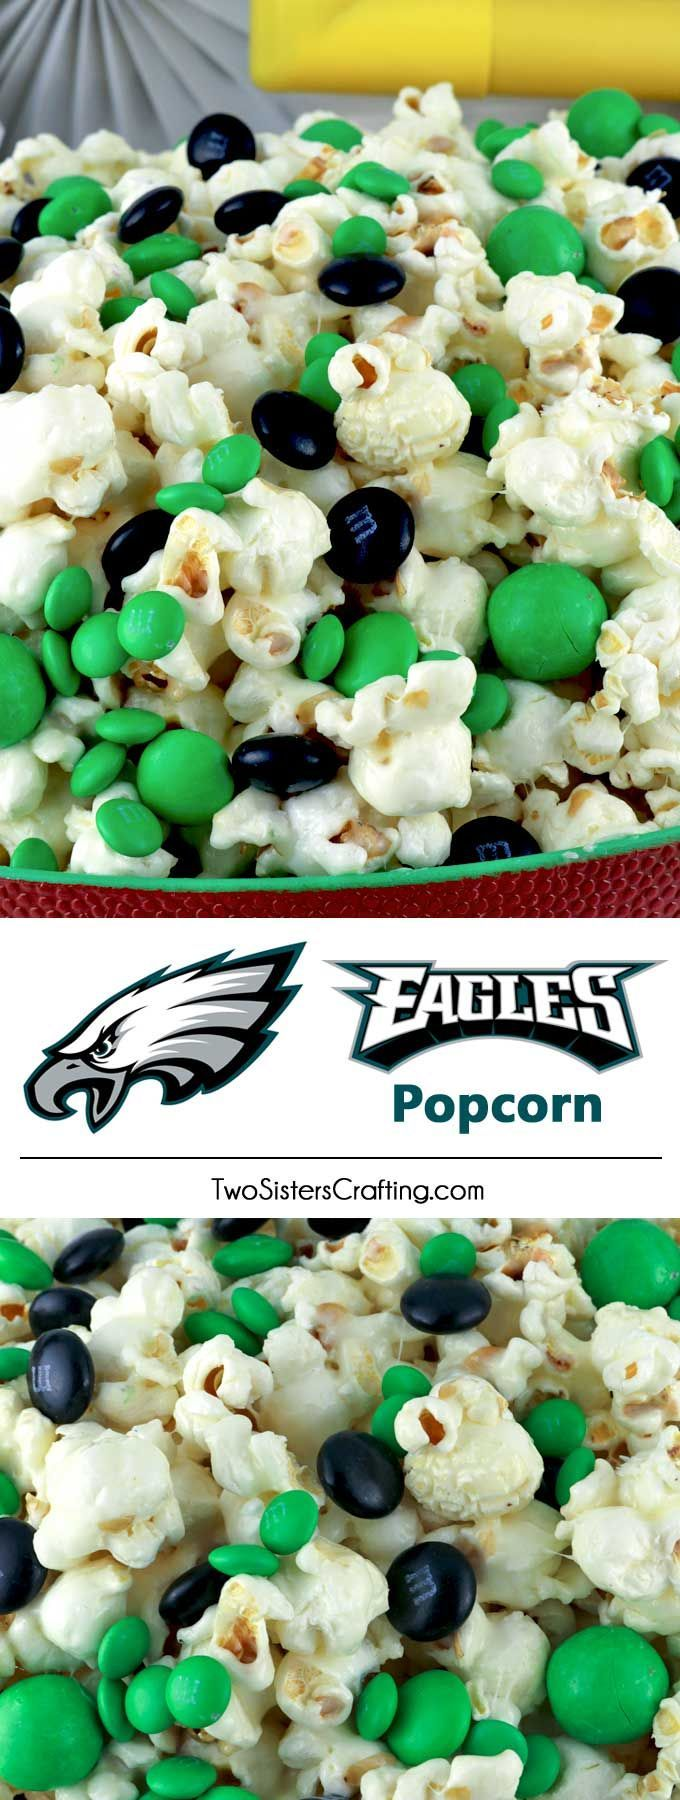 Philadelphia Eagles Popcorn for those Philadelphia Eagles fans in your life. Sweet, salty, crunchy and delicious and it is extremely easy to make. This delicious popcorn will be perfect at your next game day football party. a NFL playoff party or a Super Bowl party. Follow us for more fun Super Bowl Food Ideas. #philadelphiaeagles #eagles #superbowl  ✅ Follow my boards for more Pinterest <@Chanel Monroe  #nflfootballfun